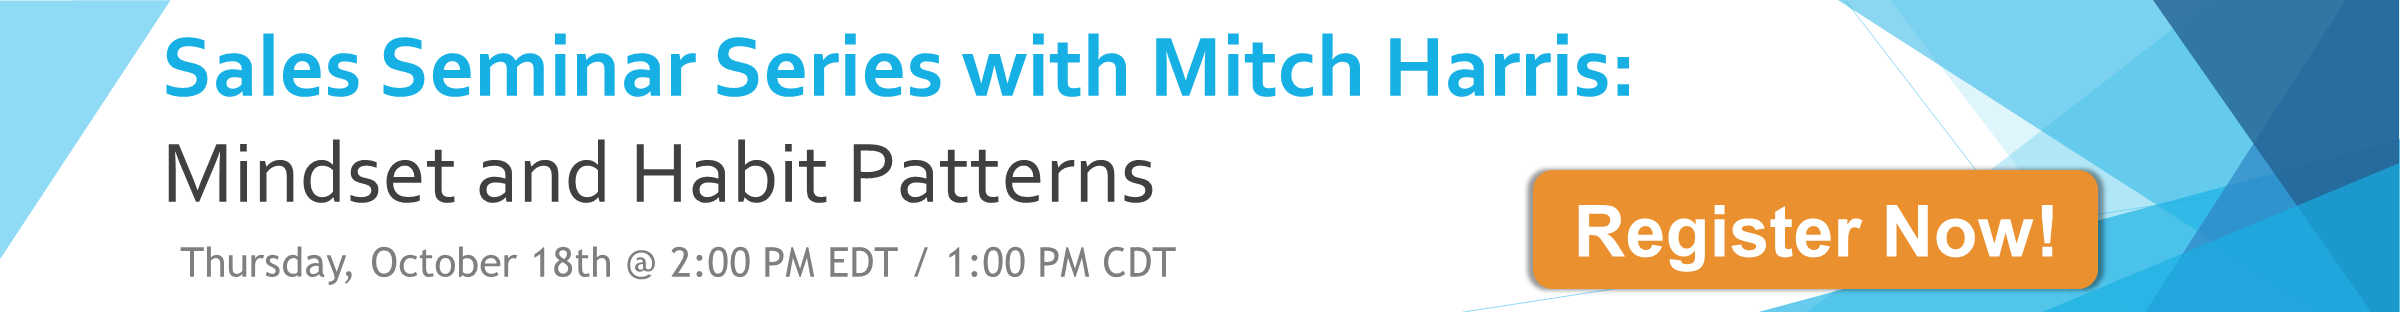 Register for Sales Seminar with Mitch Harris Entitled Mindset and Habit Patterns